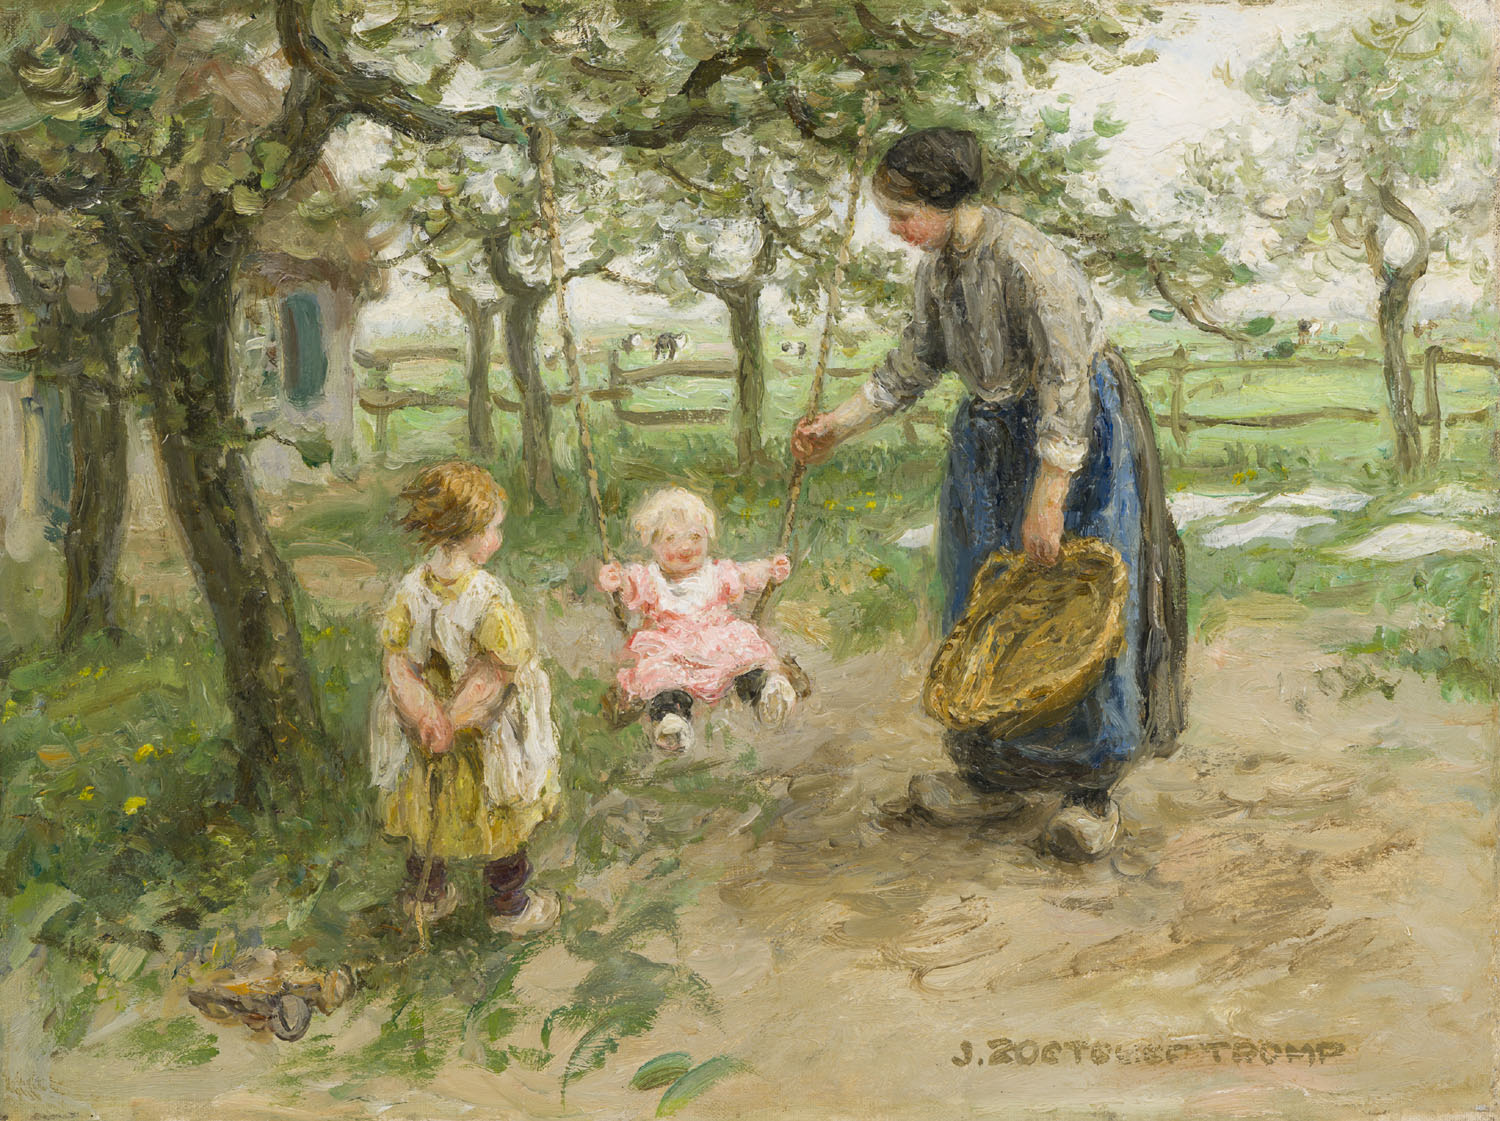 Jan Zoetelief Tromp | Playing in the garden | Kunsthandel Bies | Bies Gallery